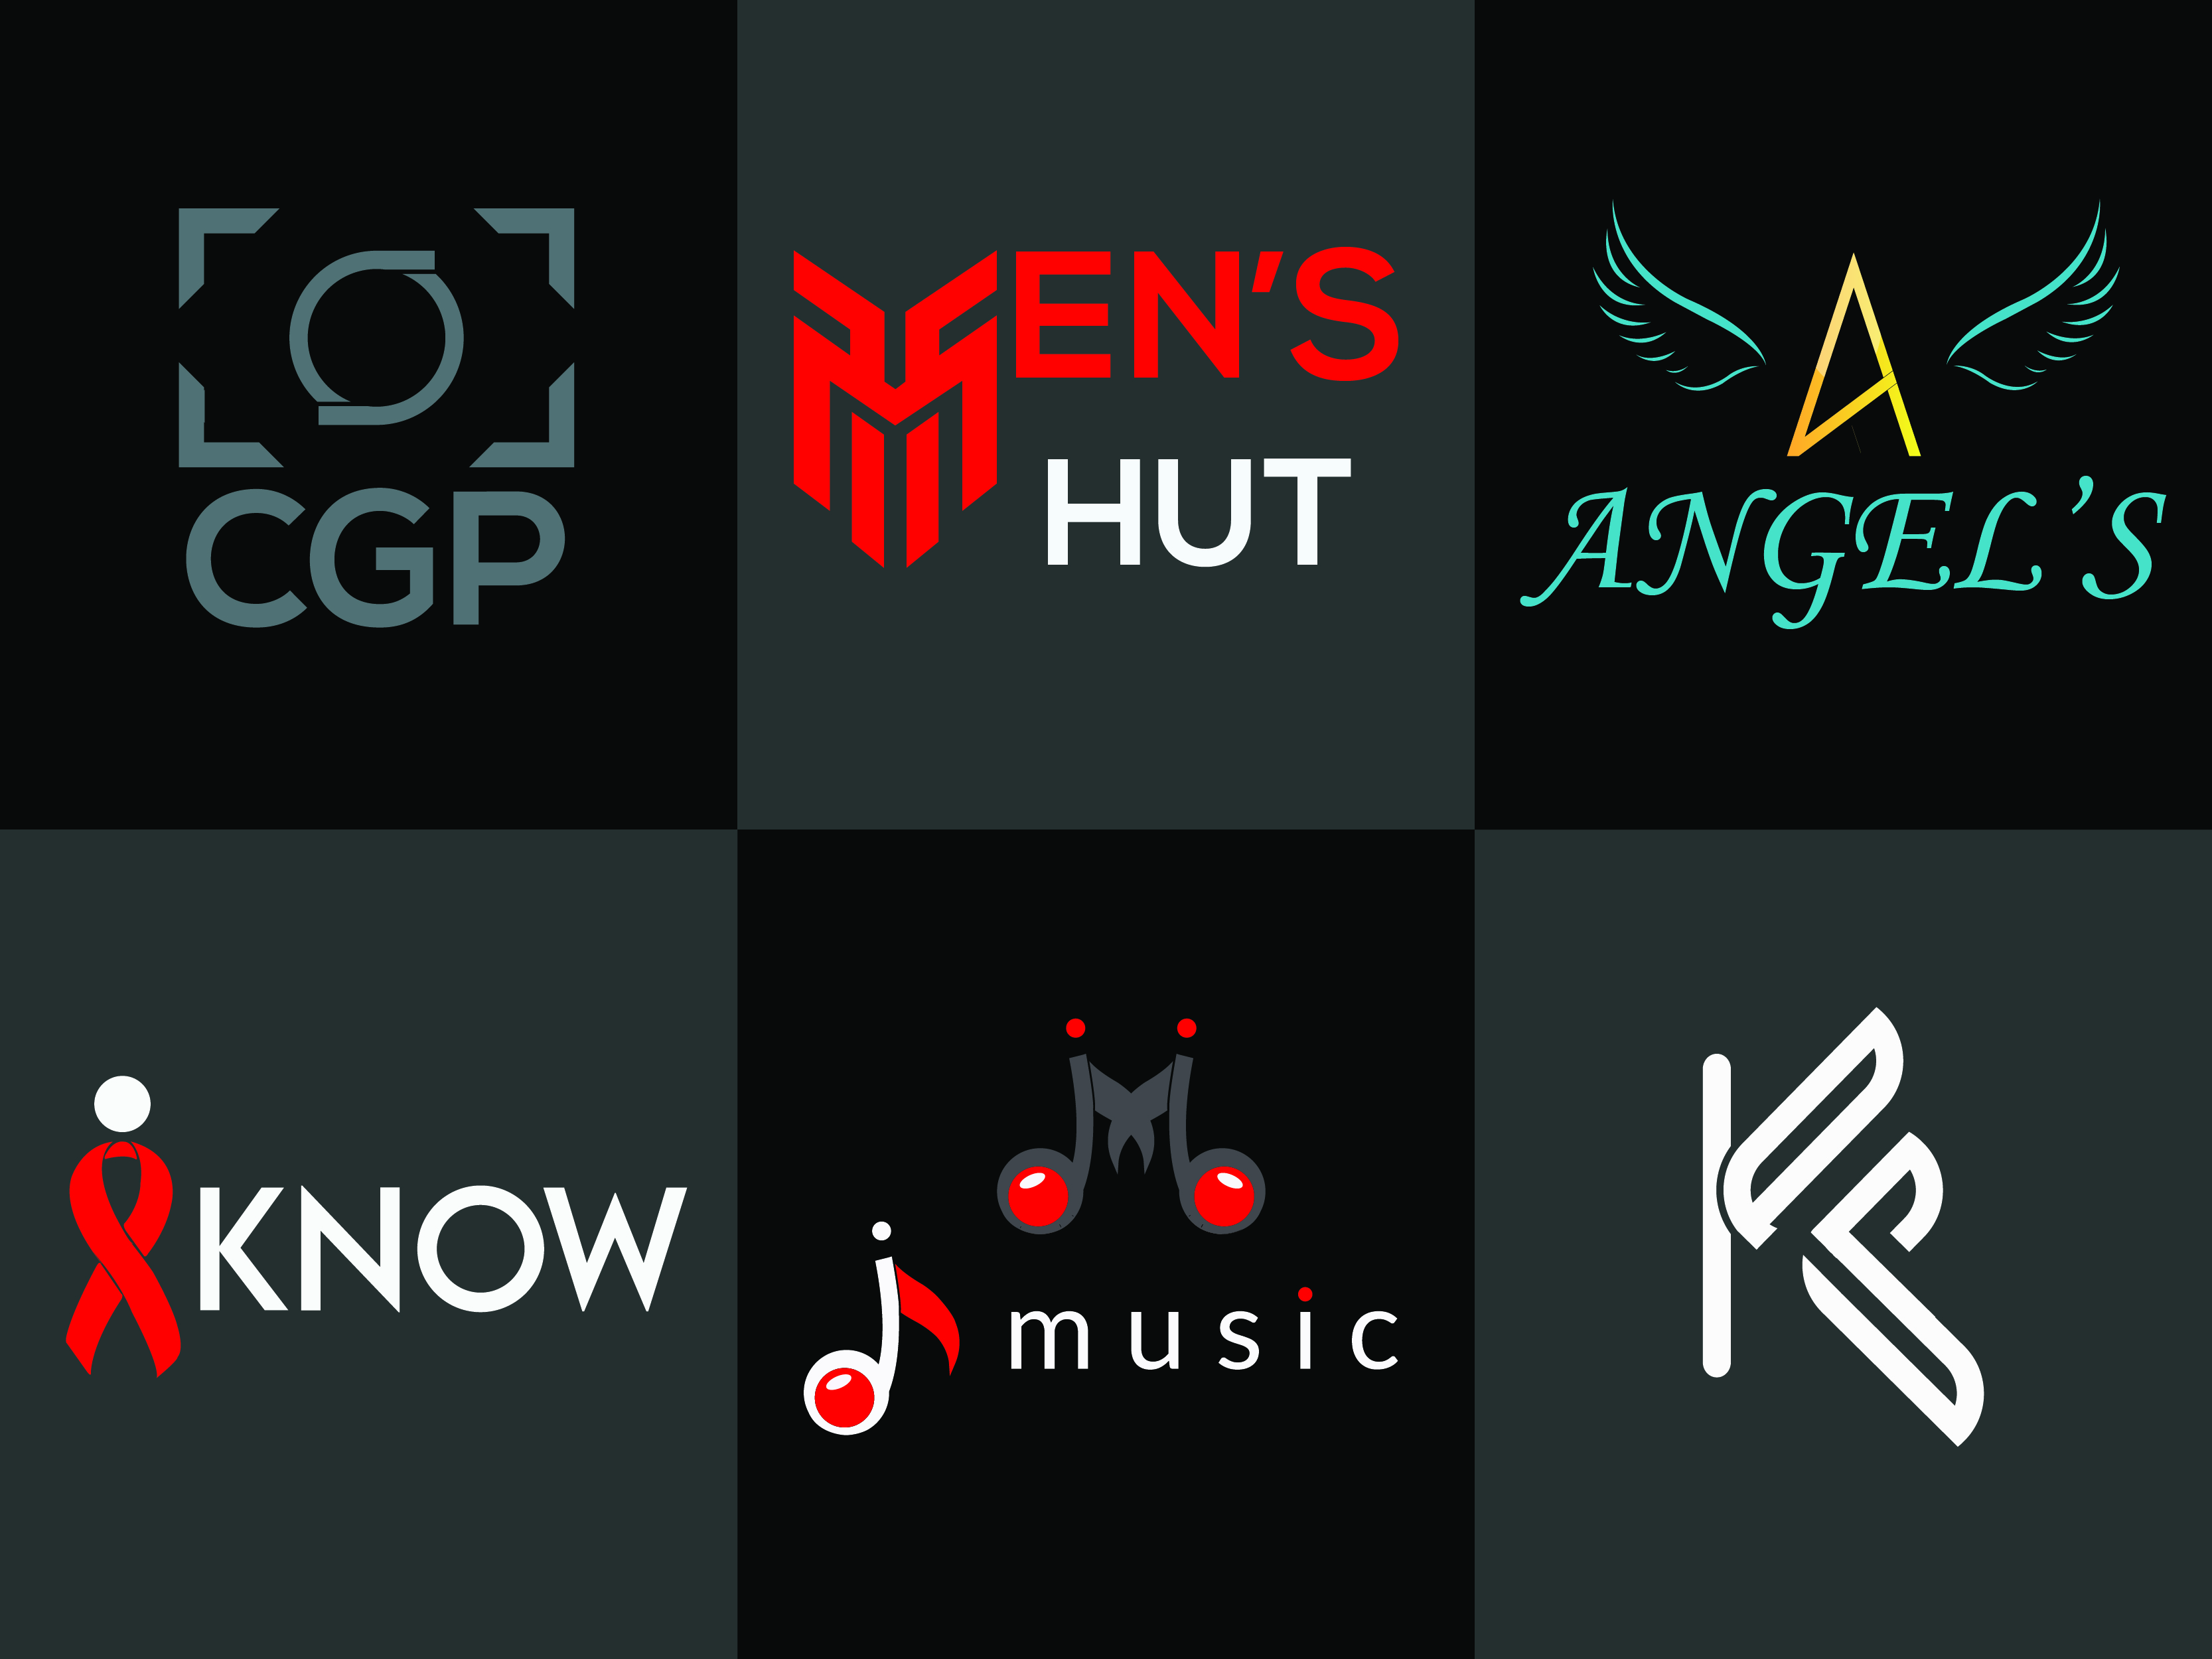 I will do modern minimalist and unique logo design in 24 hours